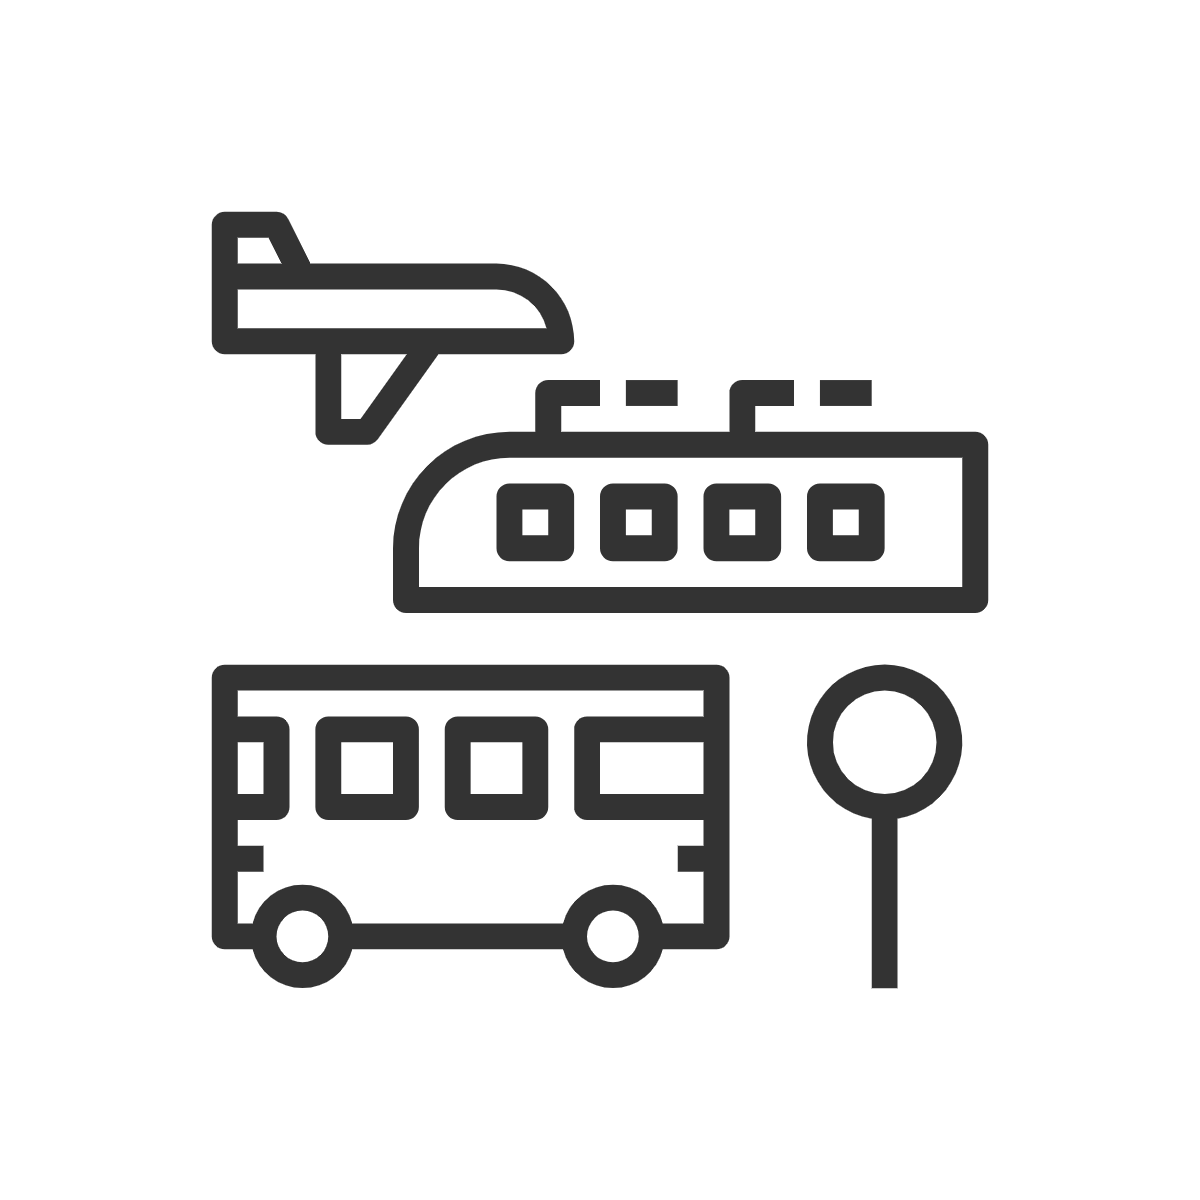 line drawing of a plane, a bus, a train, and a traffic sign